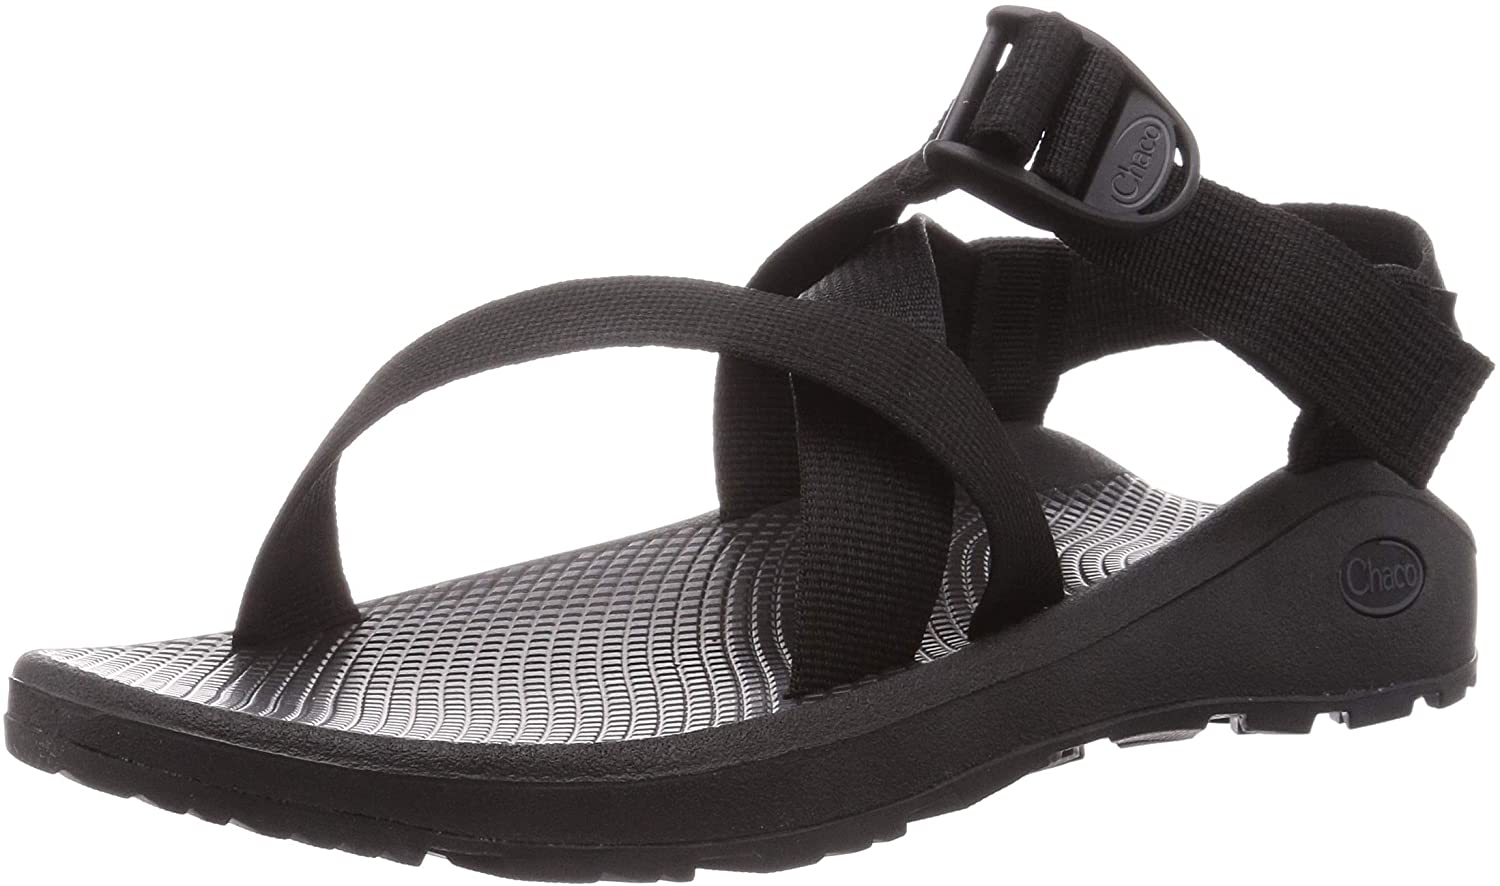 Chaco Men's Sandal Zcloud Shipping included Max 52% OFF